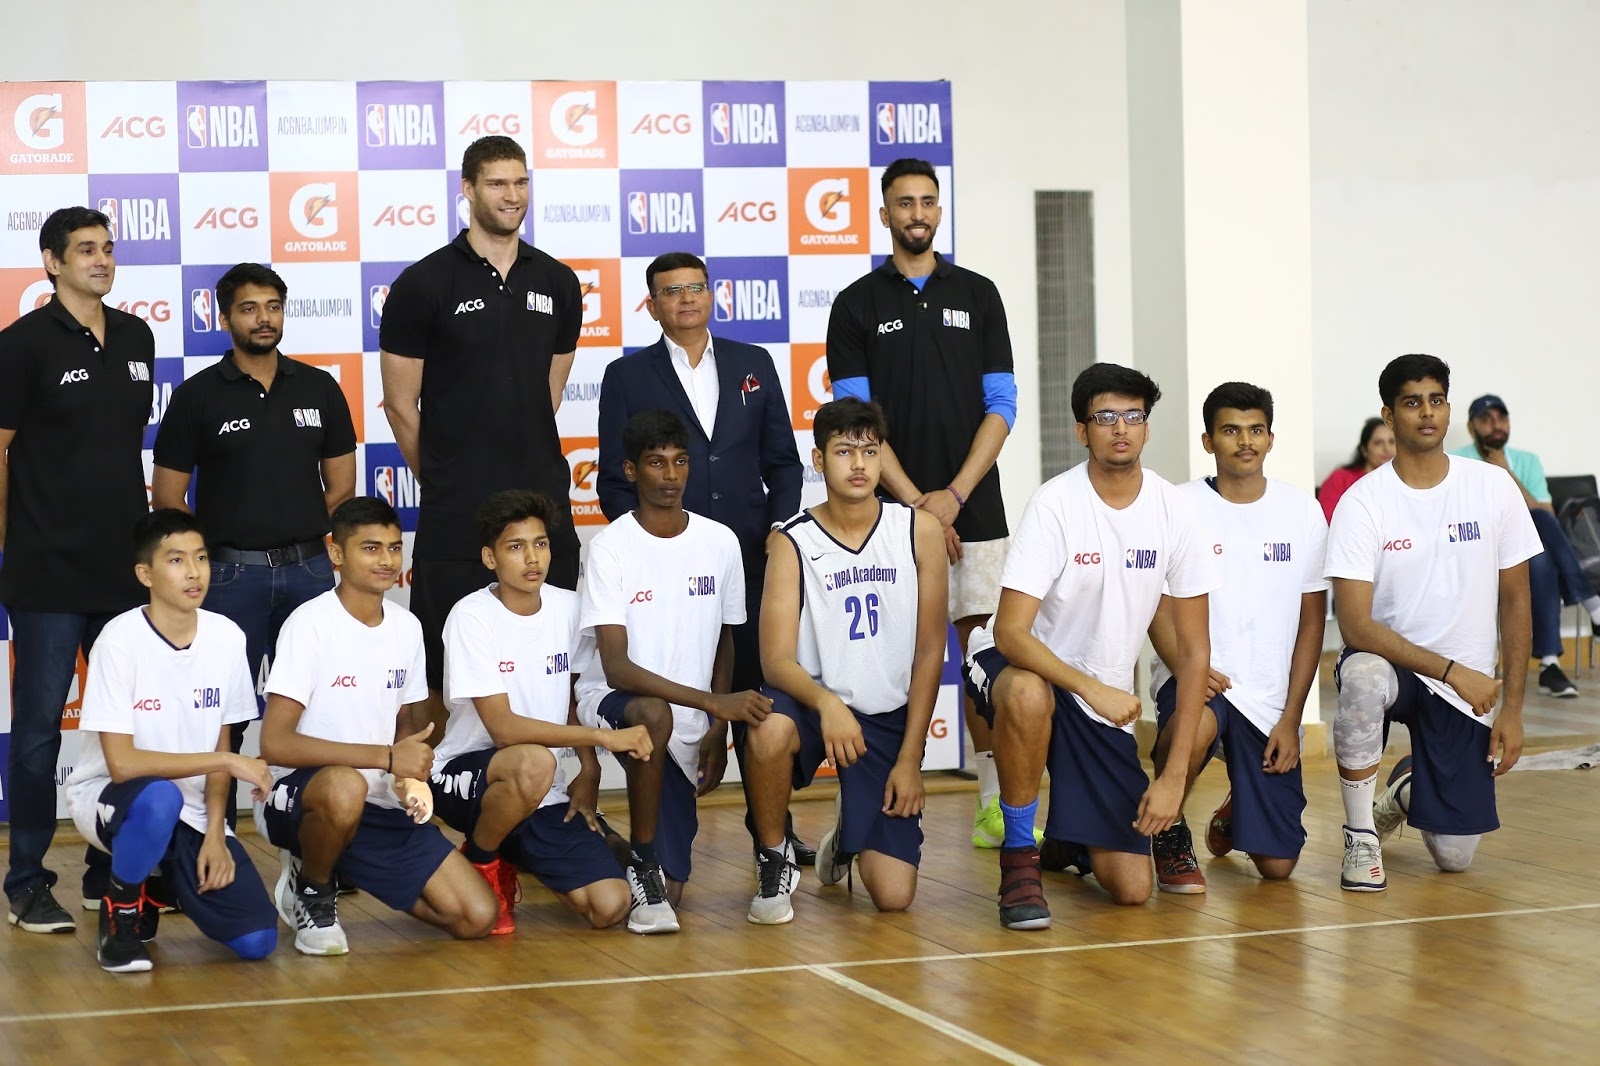 d859591608ae ACG-NBA JUMP National Finals concluded. 8 Players selected for the NBA  academy India